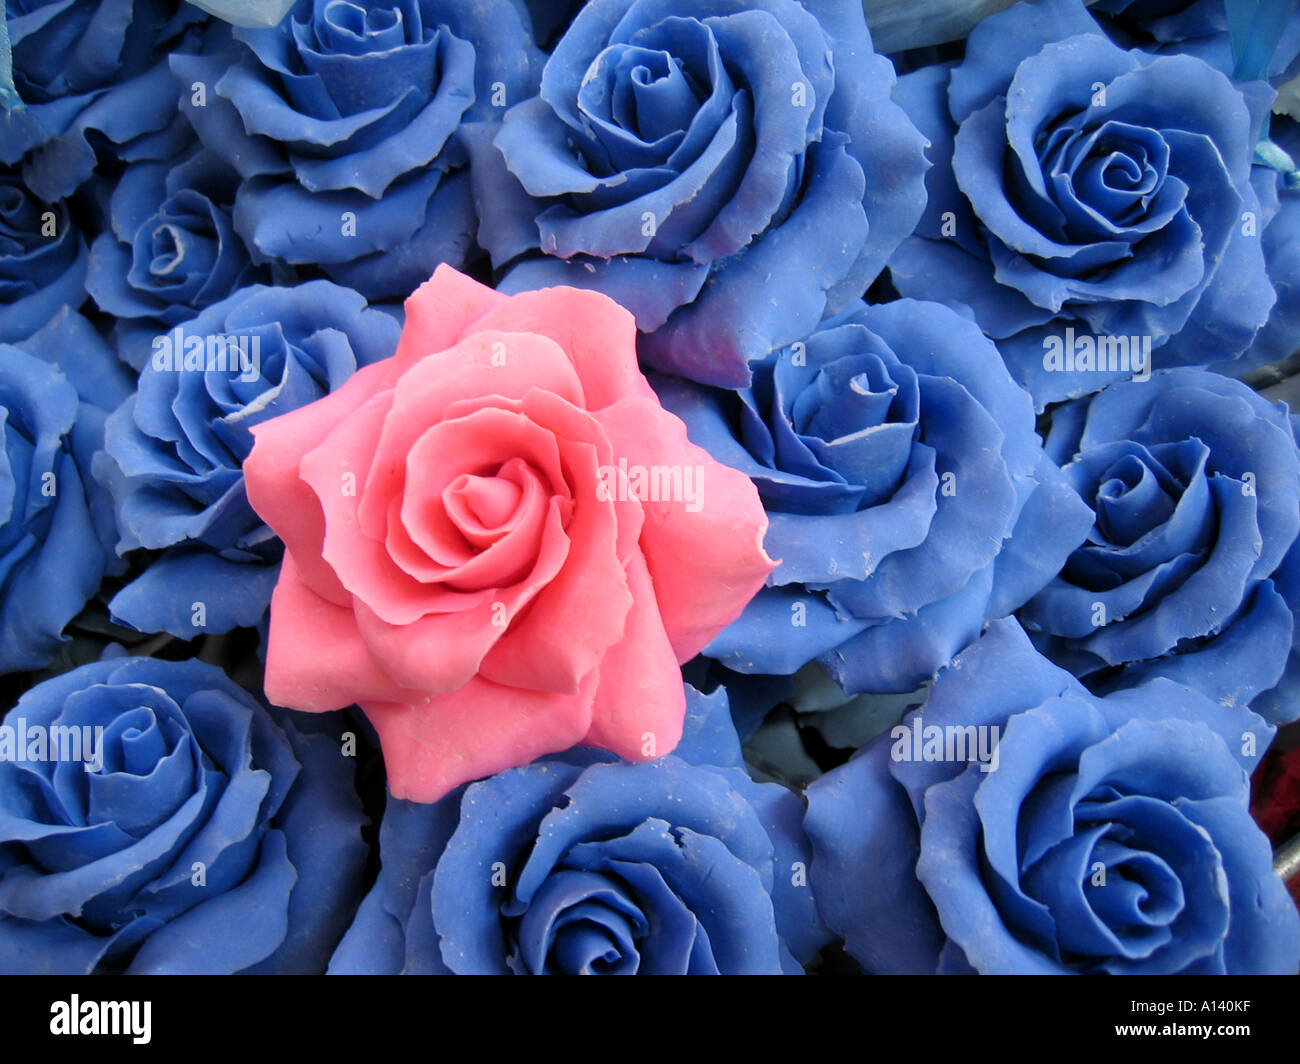 Pink Soap Rose On Bed Of Blue Roses Stock Photo 5791806 Alamy